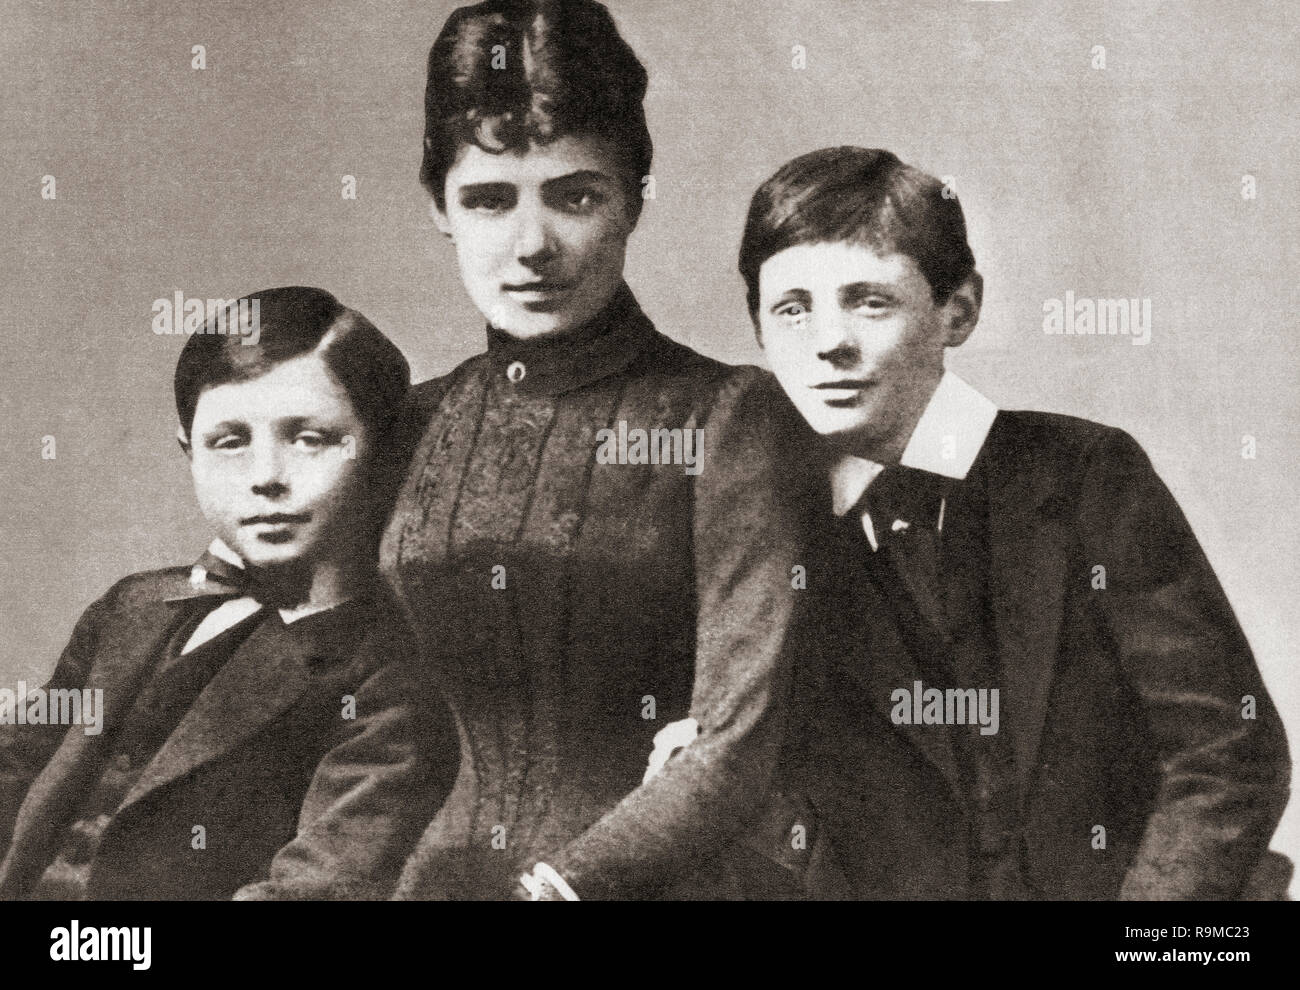 John Churchill, left, with his mother Jennie and his brother Winston, seen here as children in 1889.  Major John Strange Spencer-Churchill, 1880 – 1947, aka Jack Churchill.  Jennie Spencer-Churchill, 1854 –1921, aka Lady Randolph Churchill. Sir Winston Leonard Spencer-Churchill, 1874 –1965. British politician, statesman, army officer, and writer, who was Prime Minister of the United Kingdom from 1940 to 1945 and again from 1951 to 1955. - Stock Image